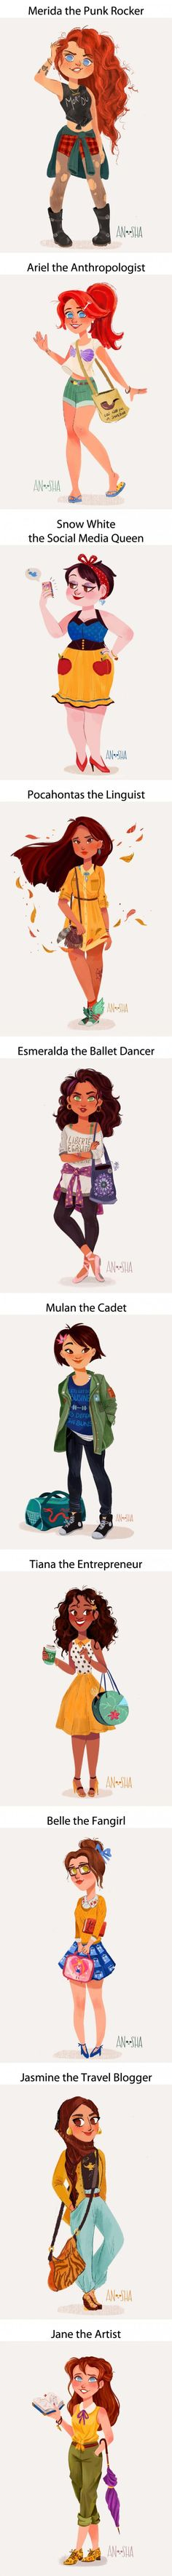 Modern Day Disney Girls. Check out Merida, Ariel, Snow White, Pocahontas,  Esmeralda, Mulan, Tiana, Belle, Jasmine and Jane looking hip for the 21st century.  Disney fan art.